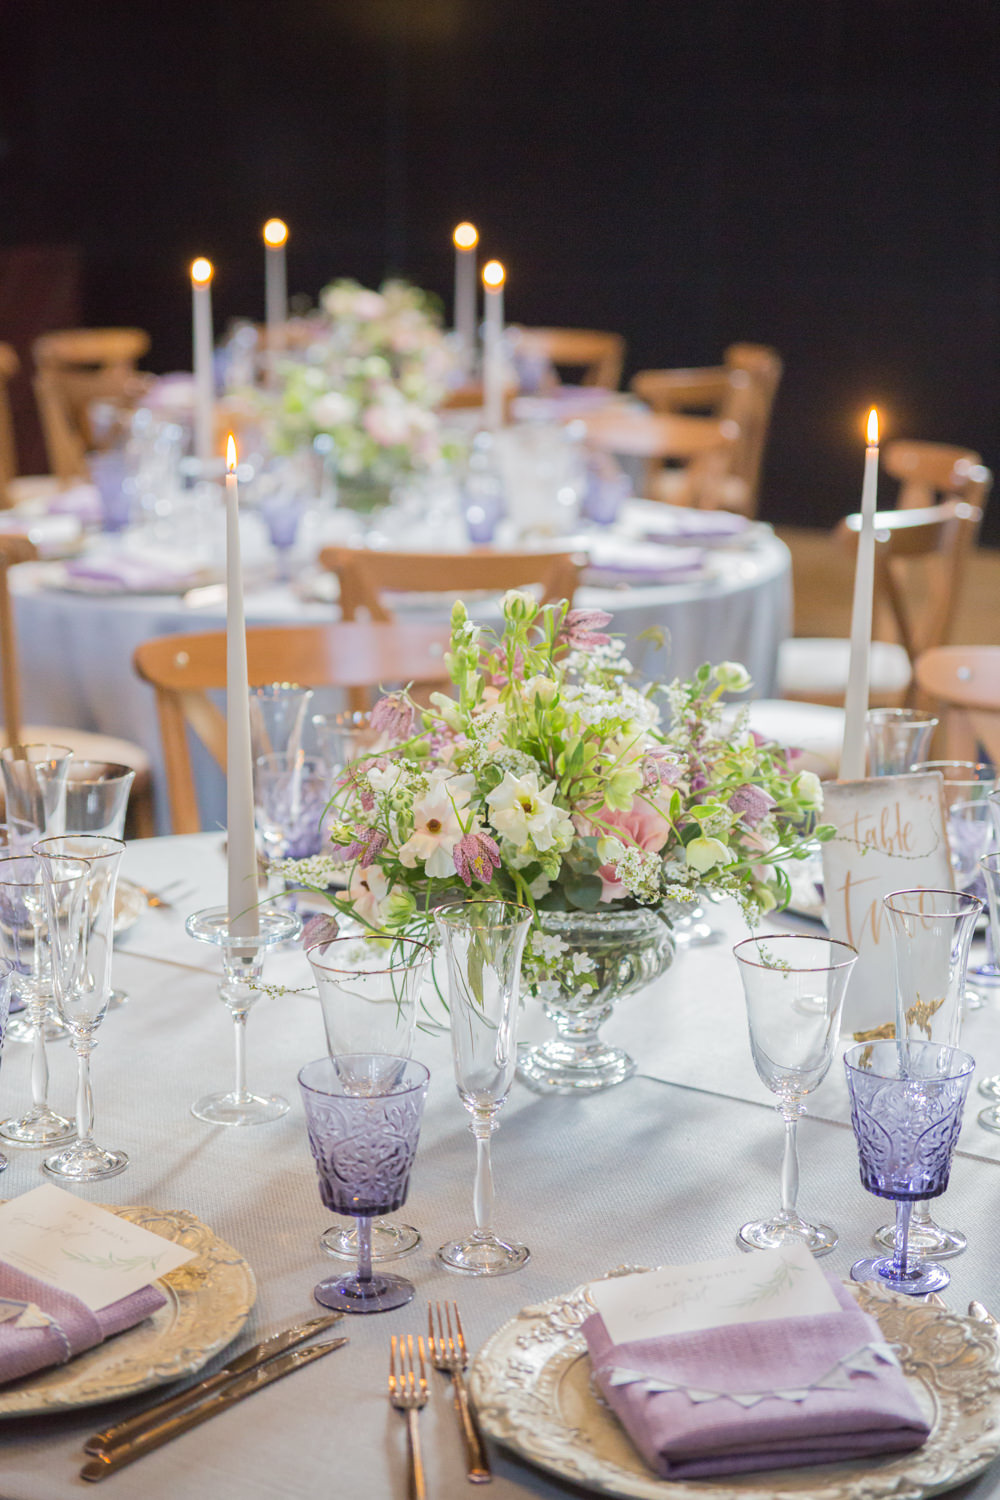 Purple Glass Taper Candles Wildflower Florals Bunting Place Cards Bodleian Library Wedding Anita Nicholson Photography